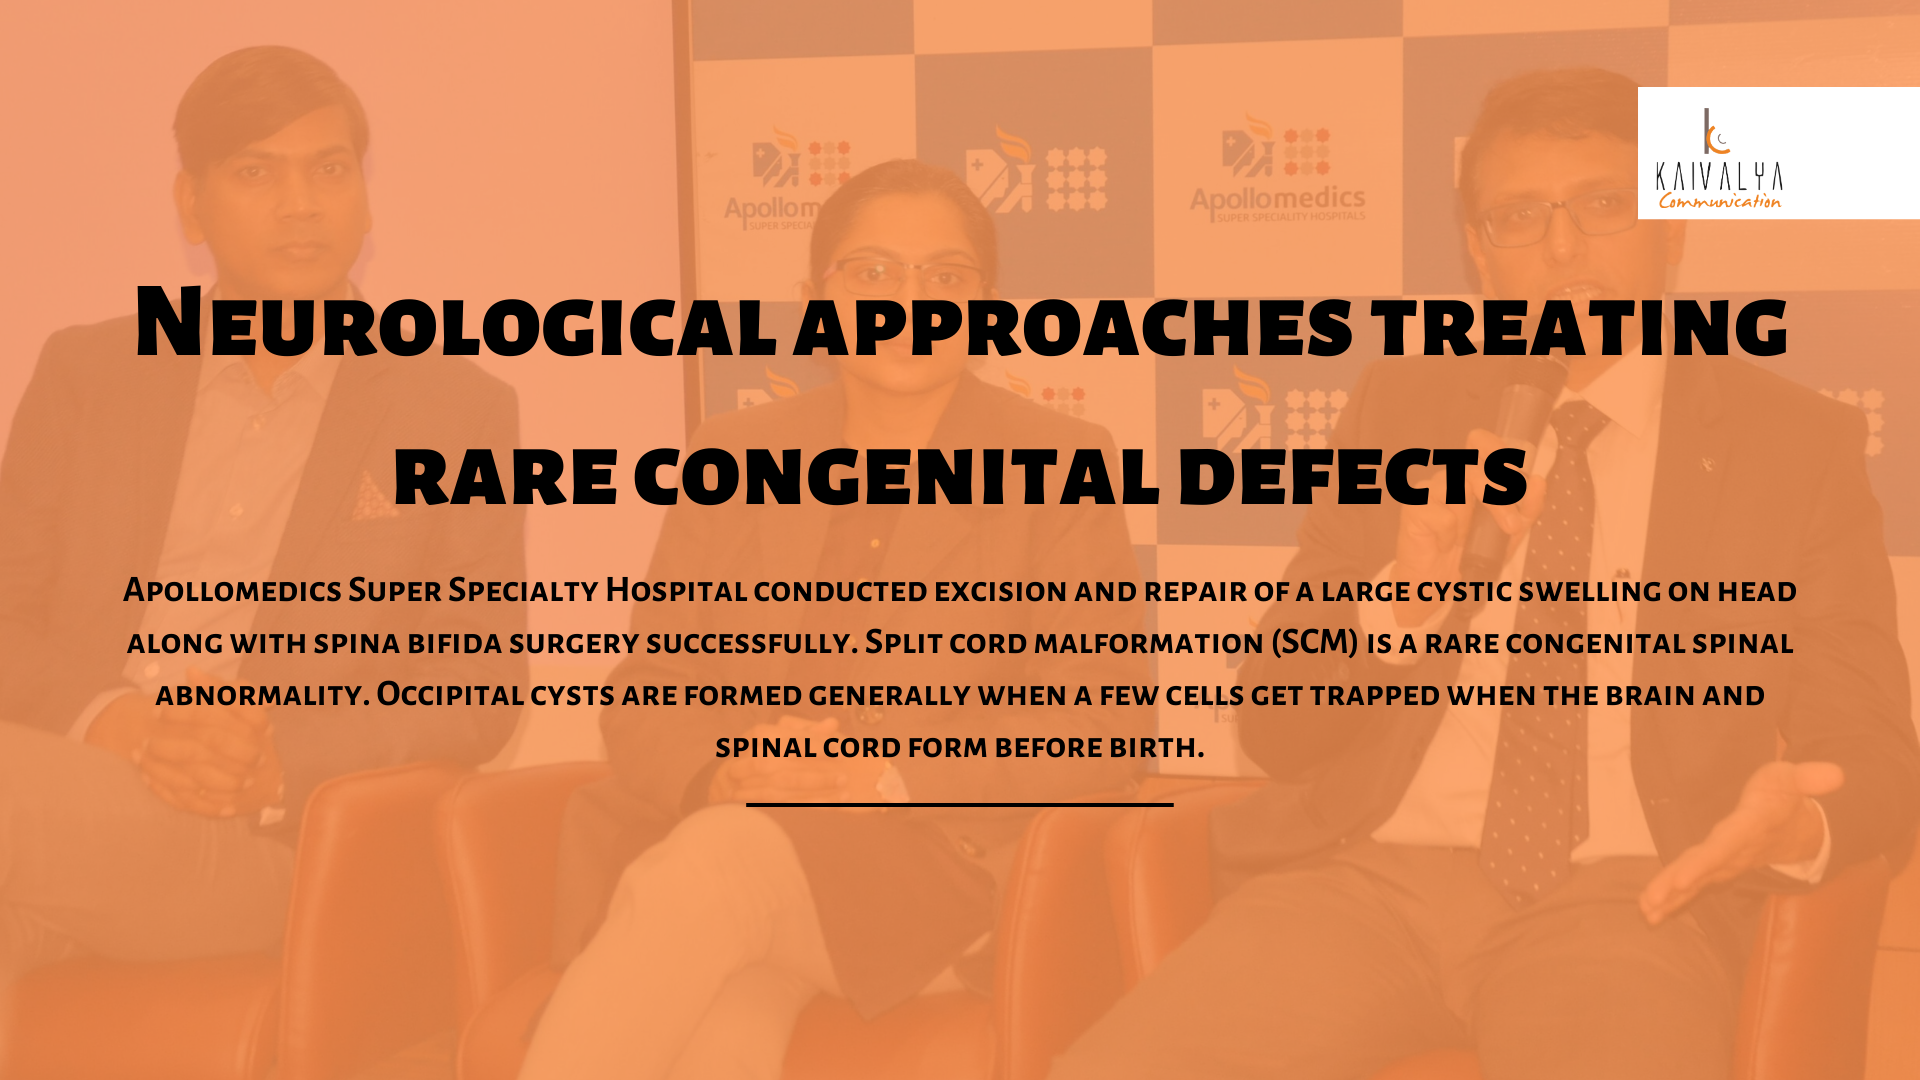 Neurological approaches treating rare congenital defects